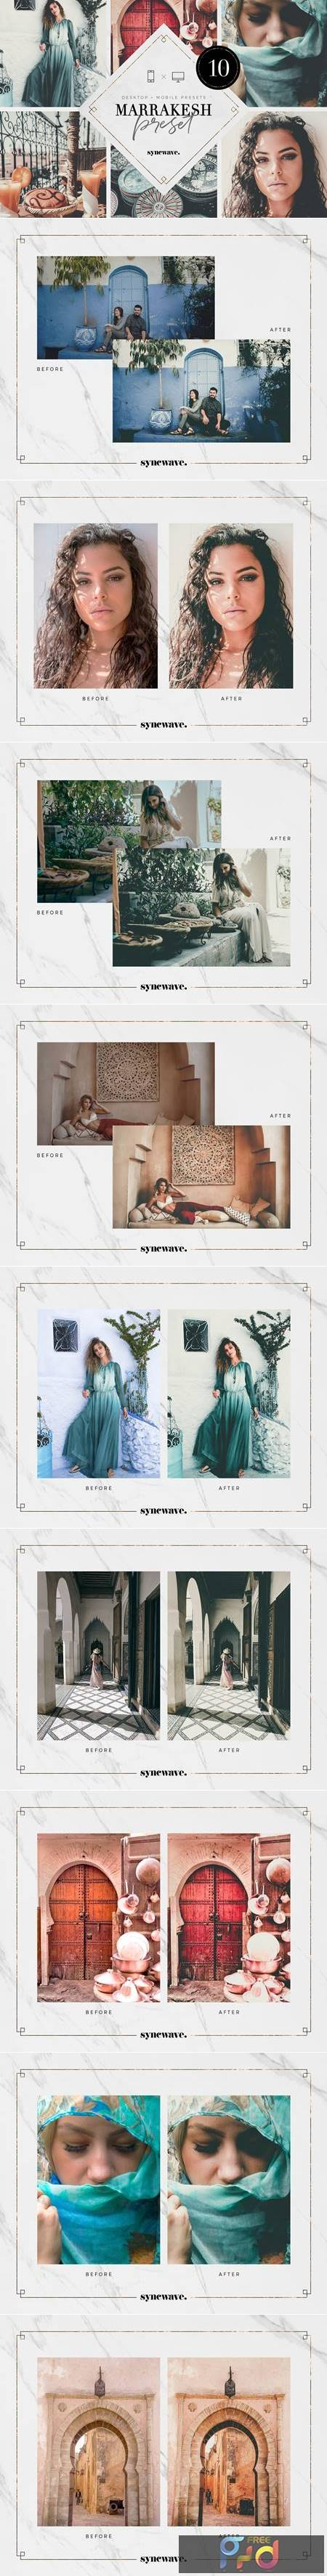 Marrakesh Lightroom Presets Bundle 5251798 1